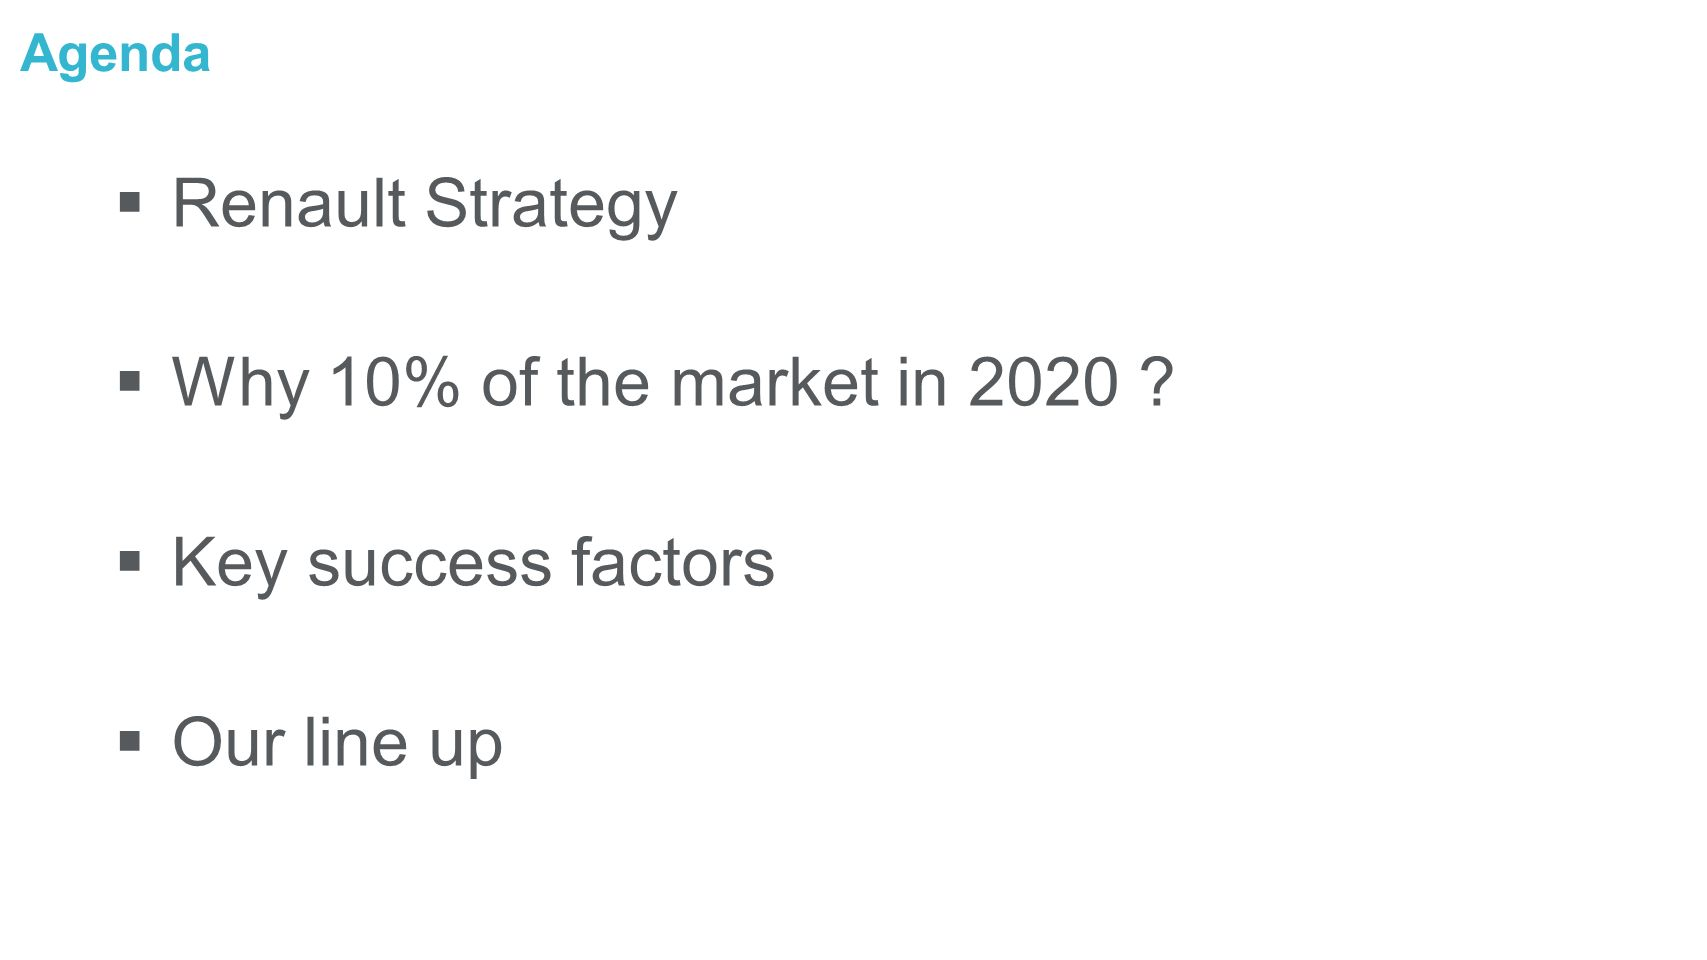 Agenda Renault Strategy Why 10% of the market in 2020 ? Key success factors Our line up